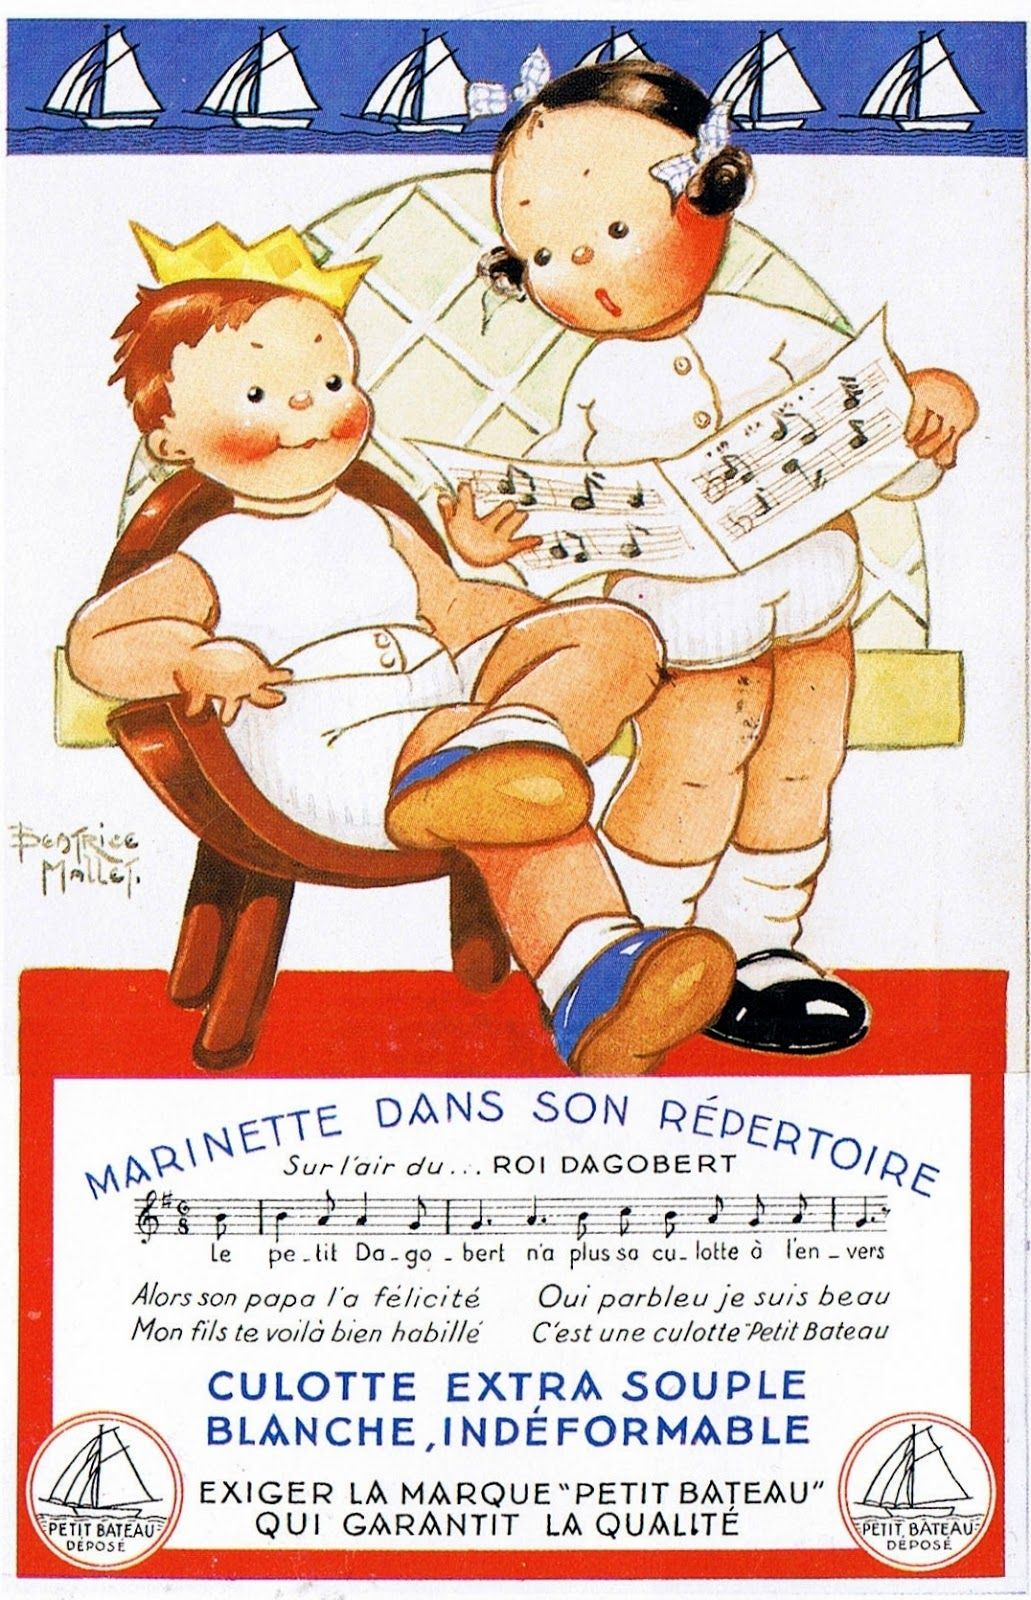 Pin By Kay E Brown On Pub Petit Bateau Etc Childrens Drawings Vintage Advertising Posters Vintage Advertisements